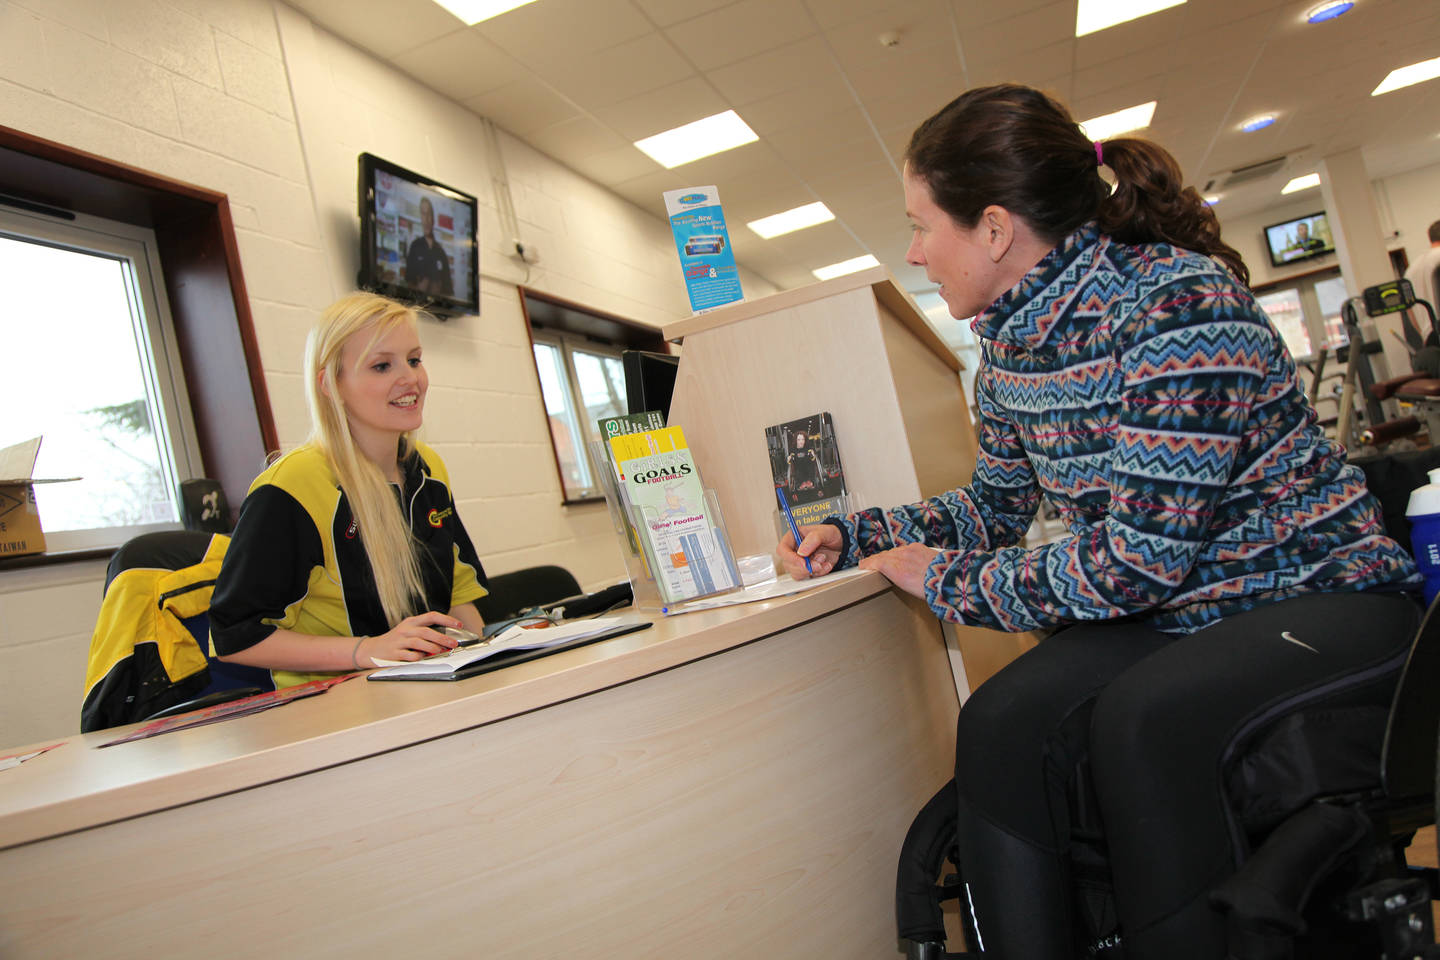 Empowering sport and leisure through inclusive customer service